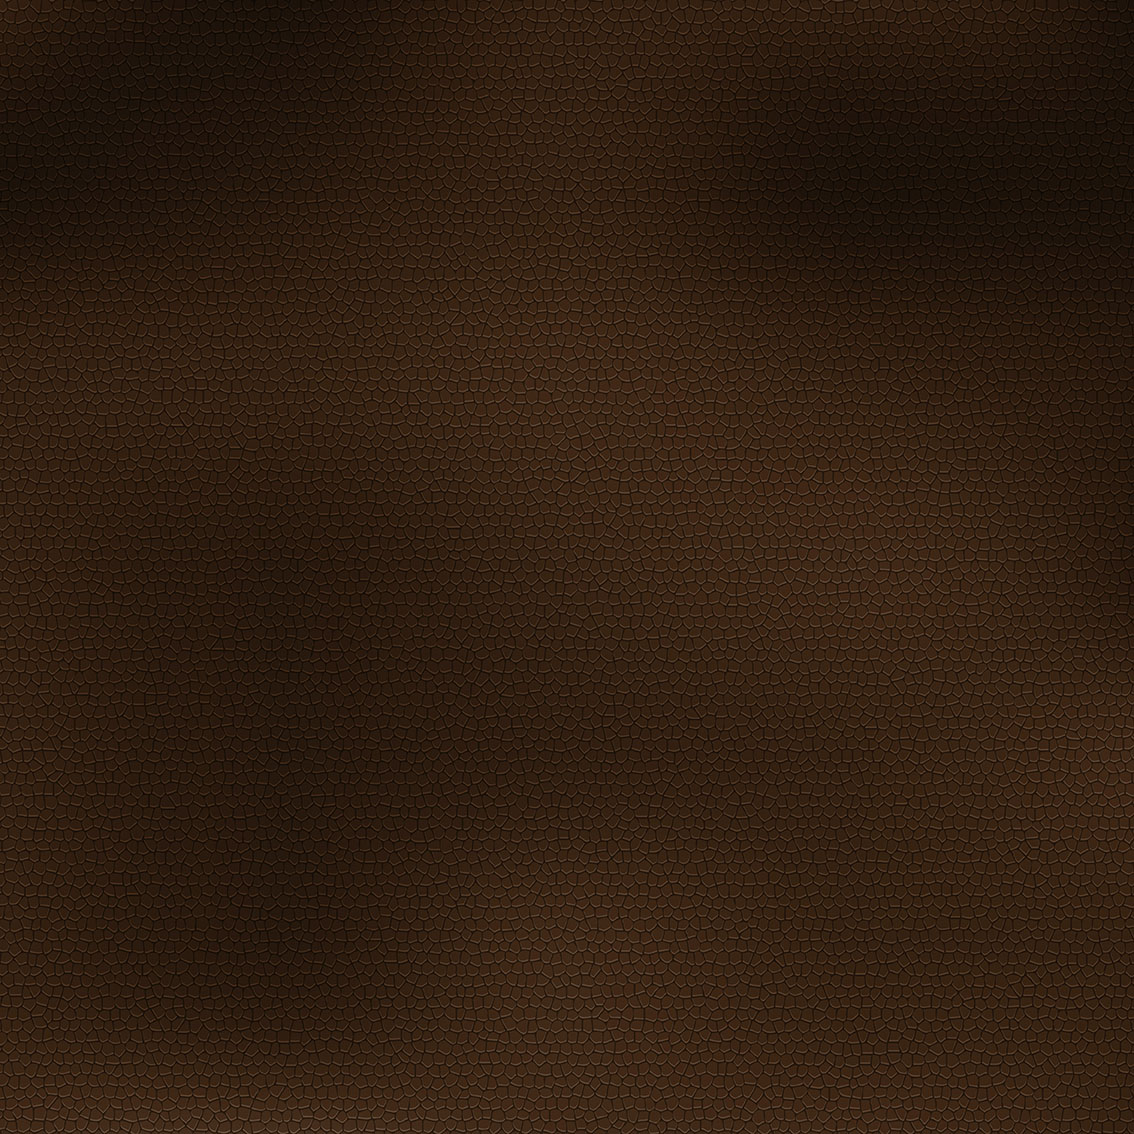 Brown Leather Texture Download Free Vector Art Stock